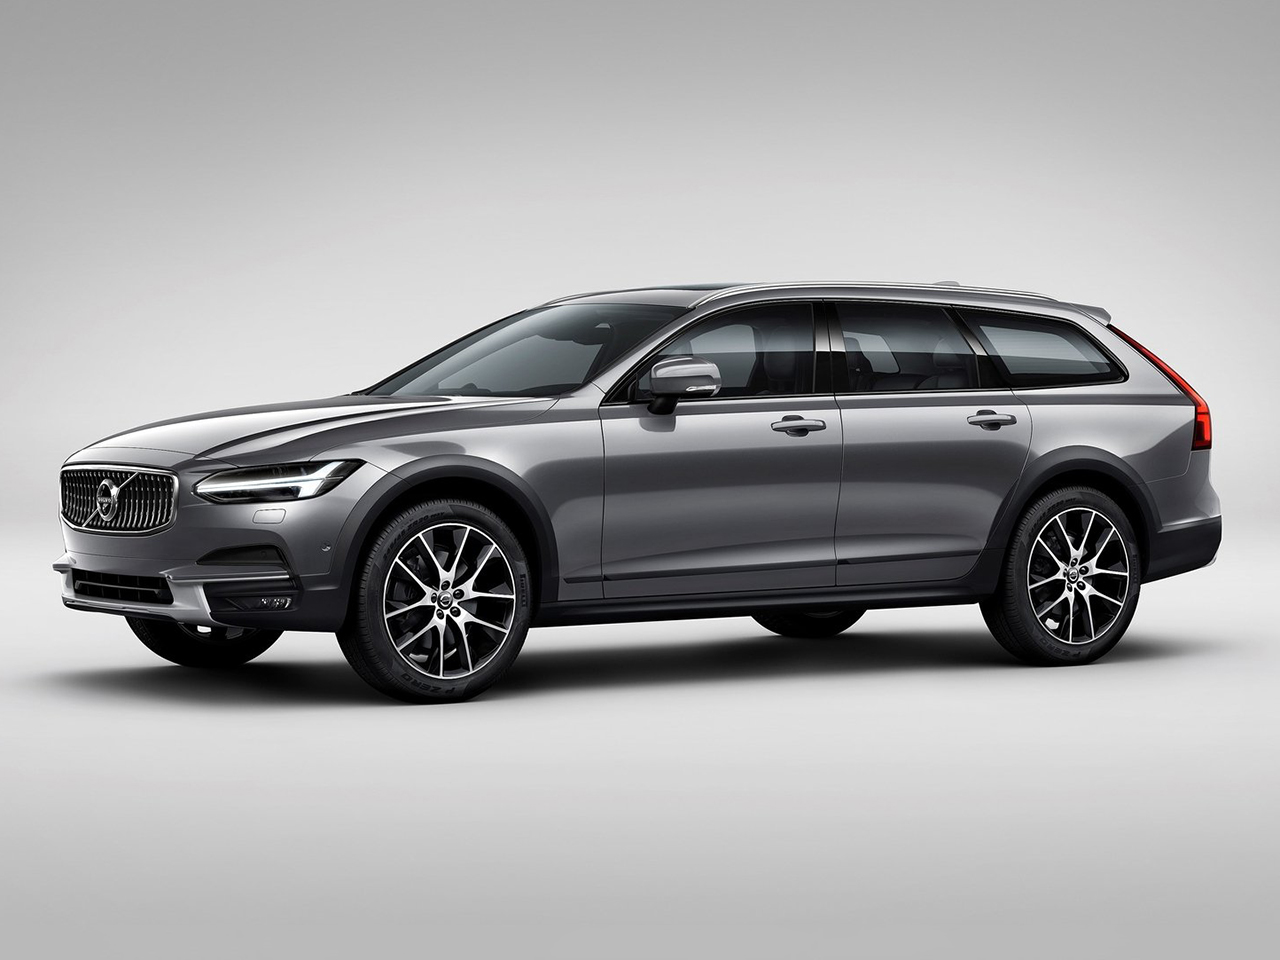 2020 Volvo V90 Redesign and Concept